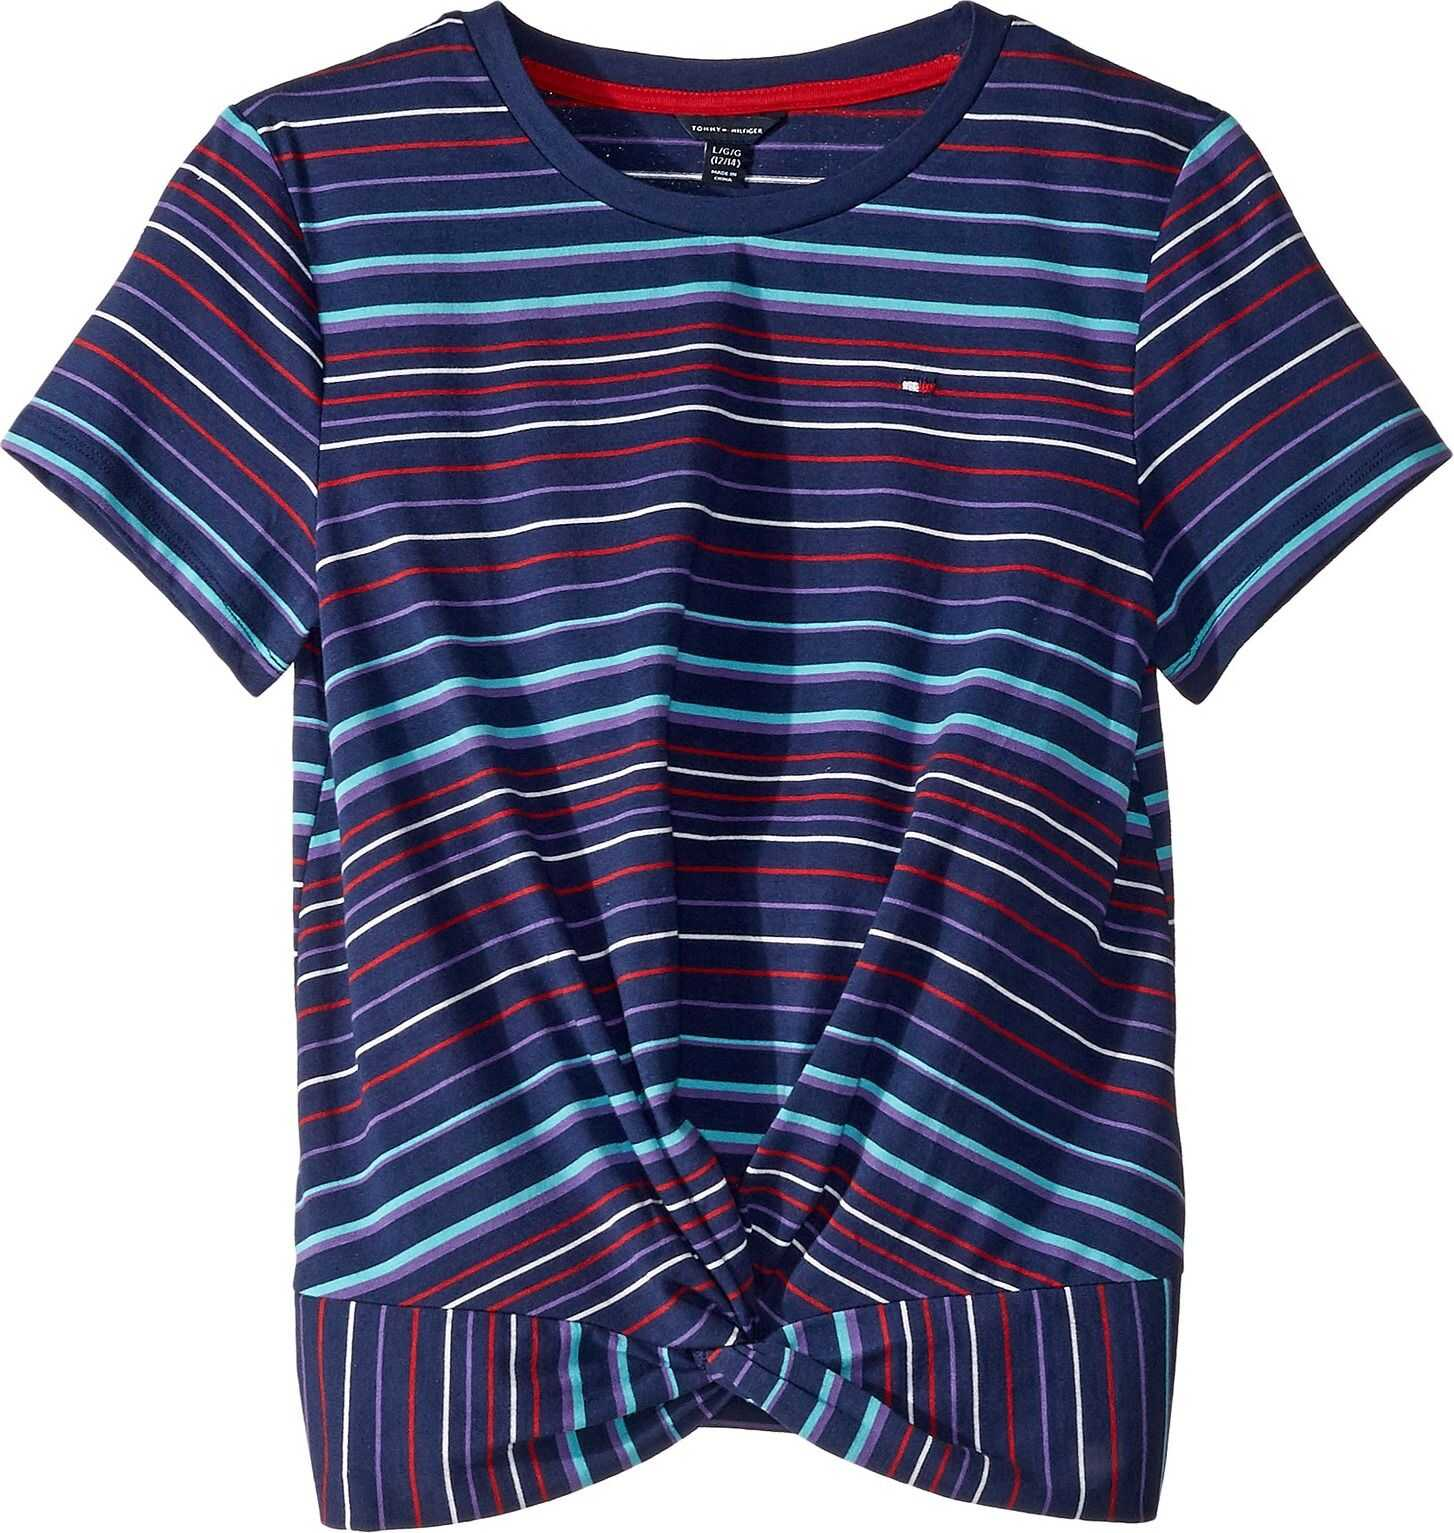 Knotted Striped Short Sleeve Tee (Big Kids)